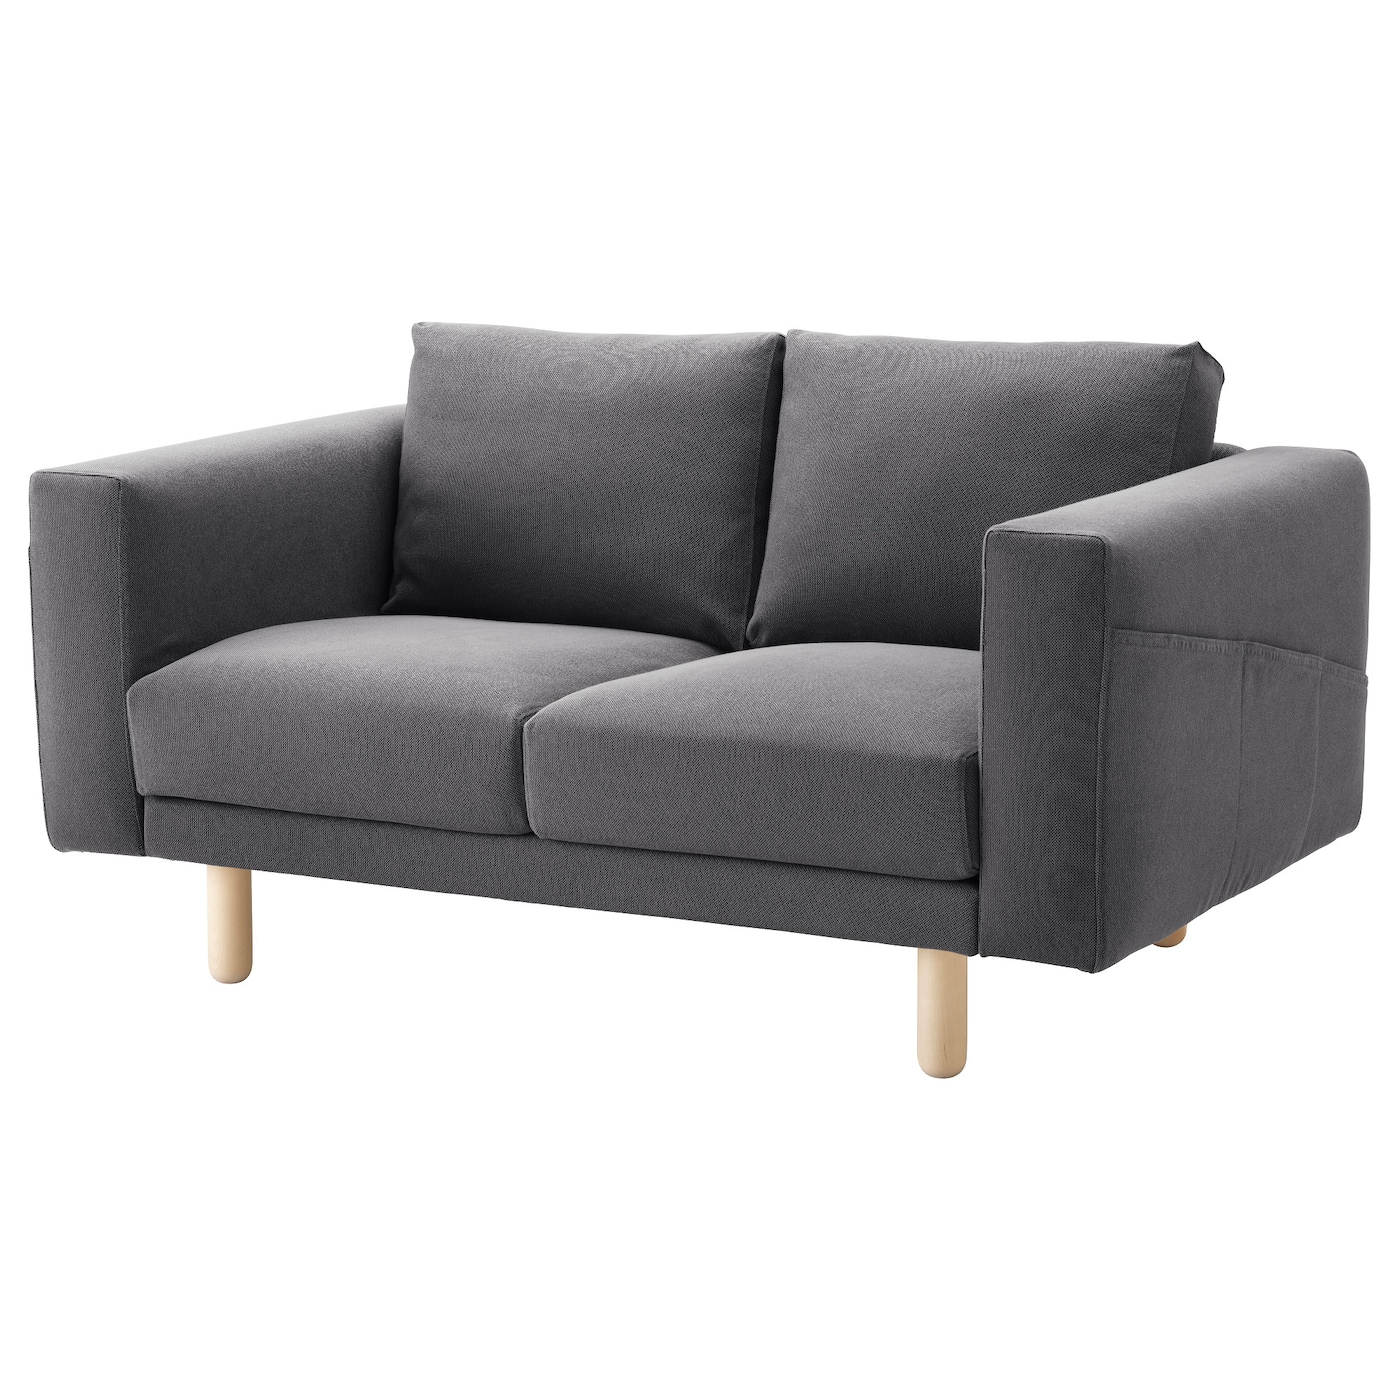 Design Small Sofas norsborg 2 seat sofa finnsta dark greybirch ikea 10 year guarantee read about the terms in the